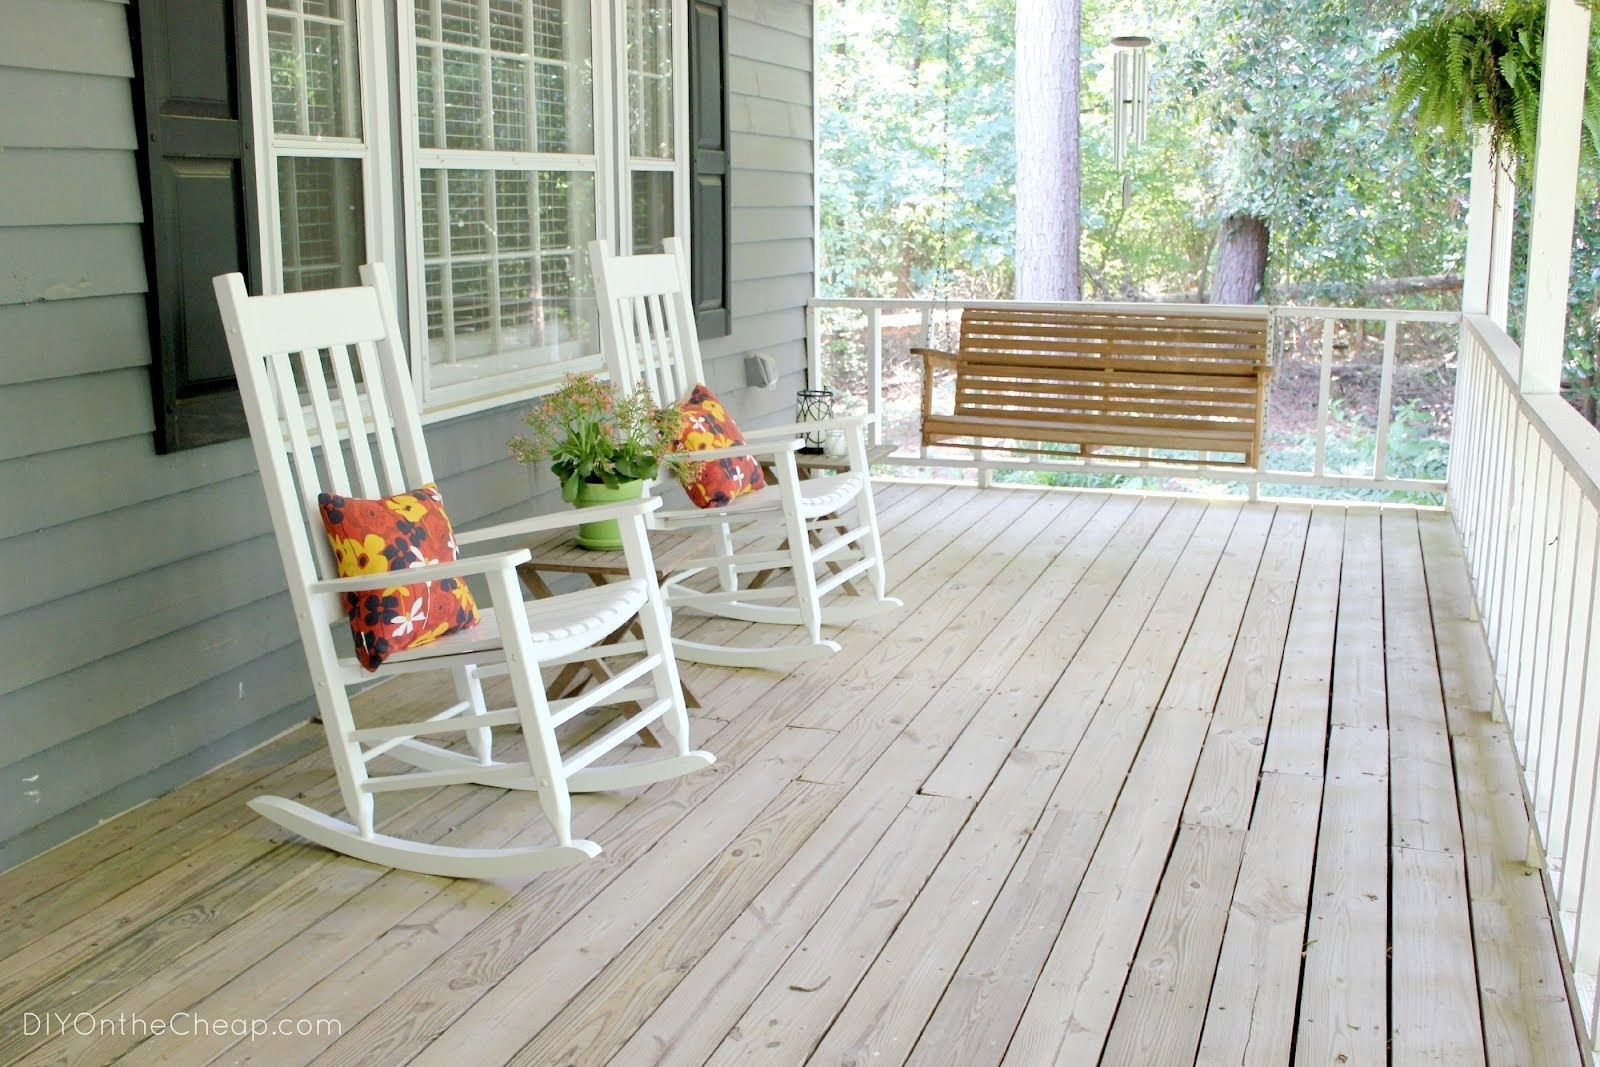 Furniture : Southern Style Rocking Chairs Wicker And Wood Rocking Within Well Known Rocking Chairs For Front Porch (View 6 of 20)